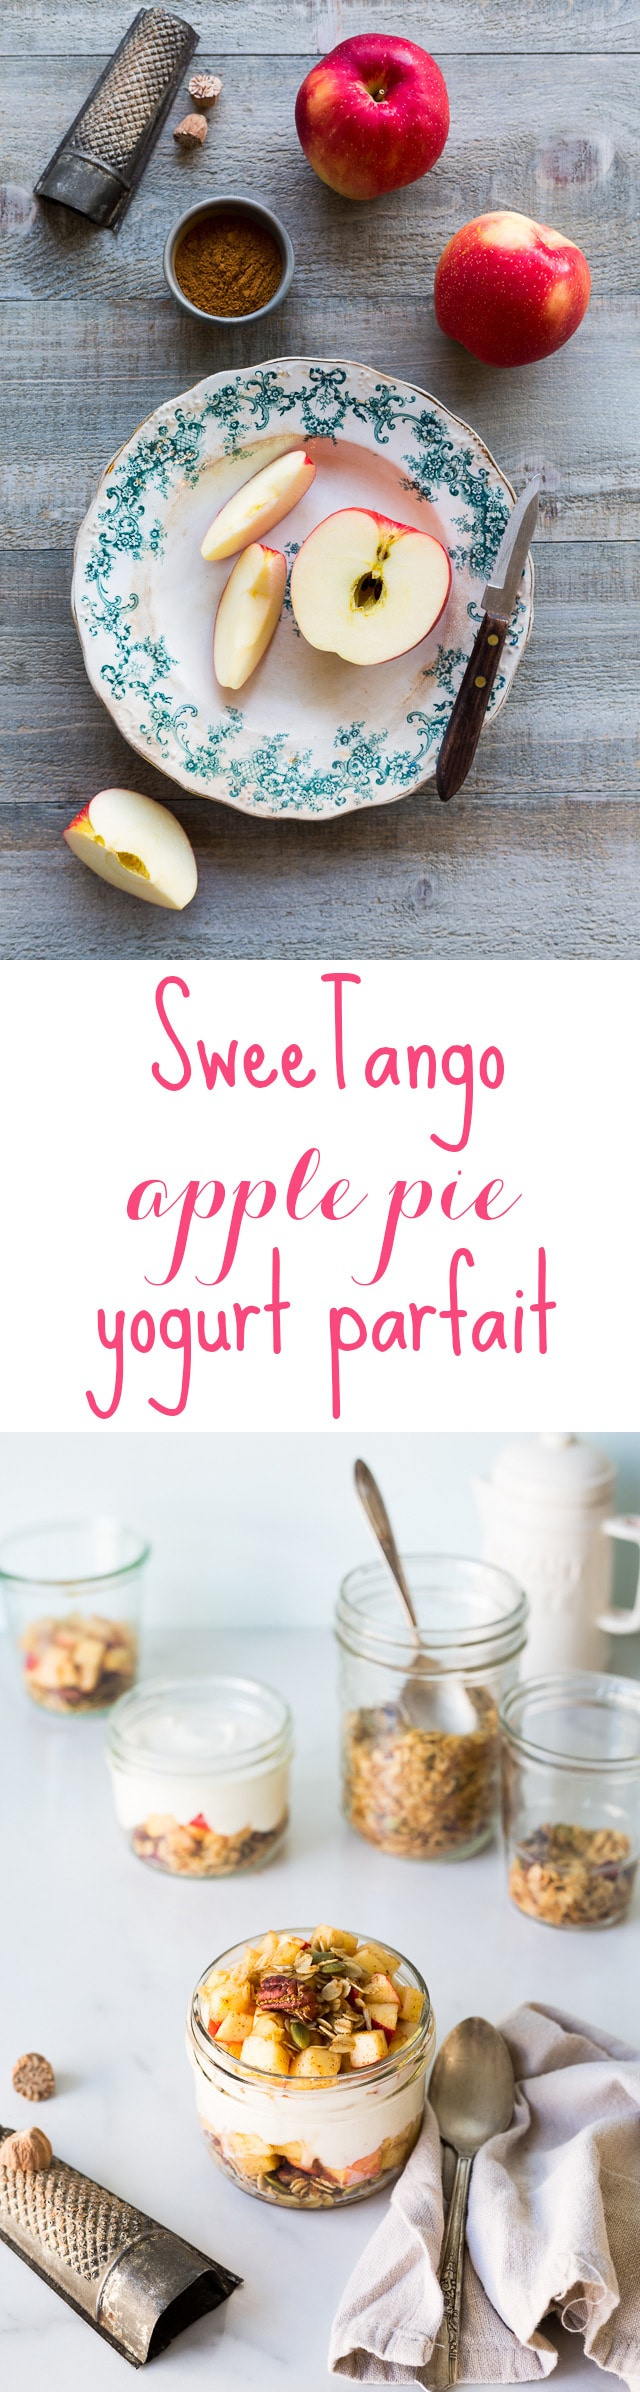 sweetango apple pie parfait with greek yogurt